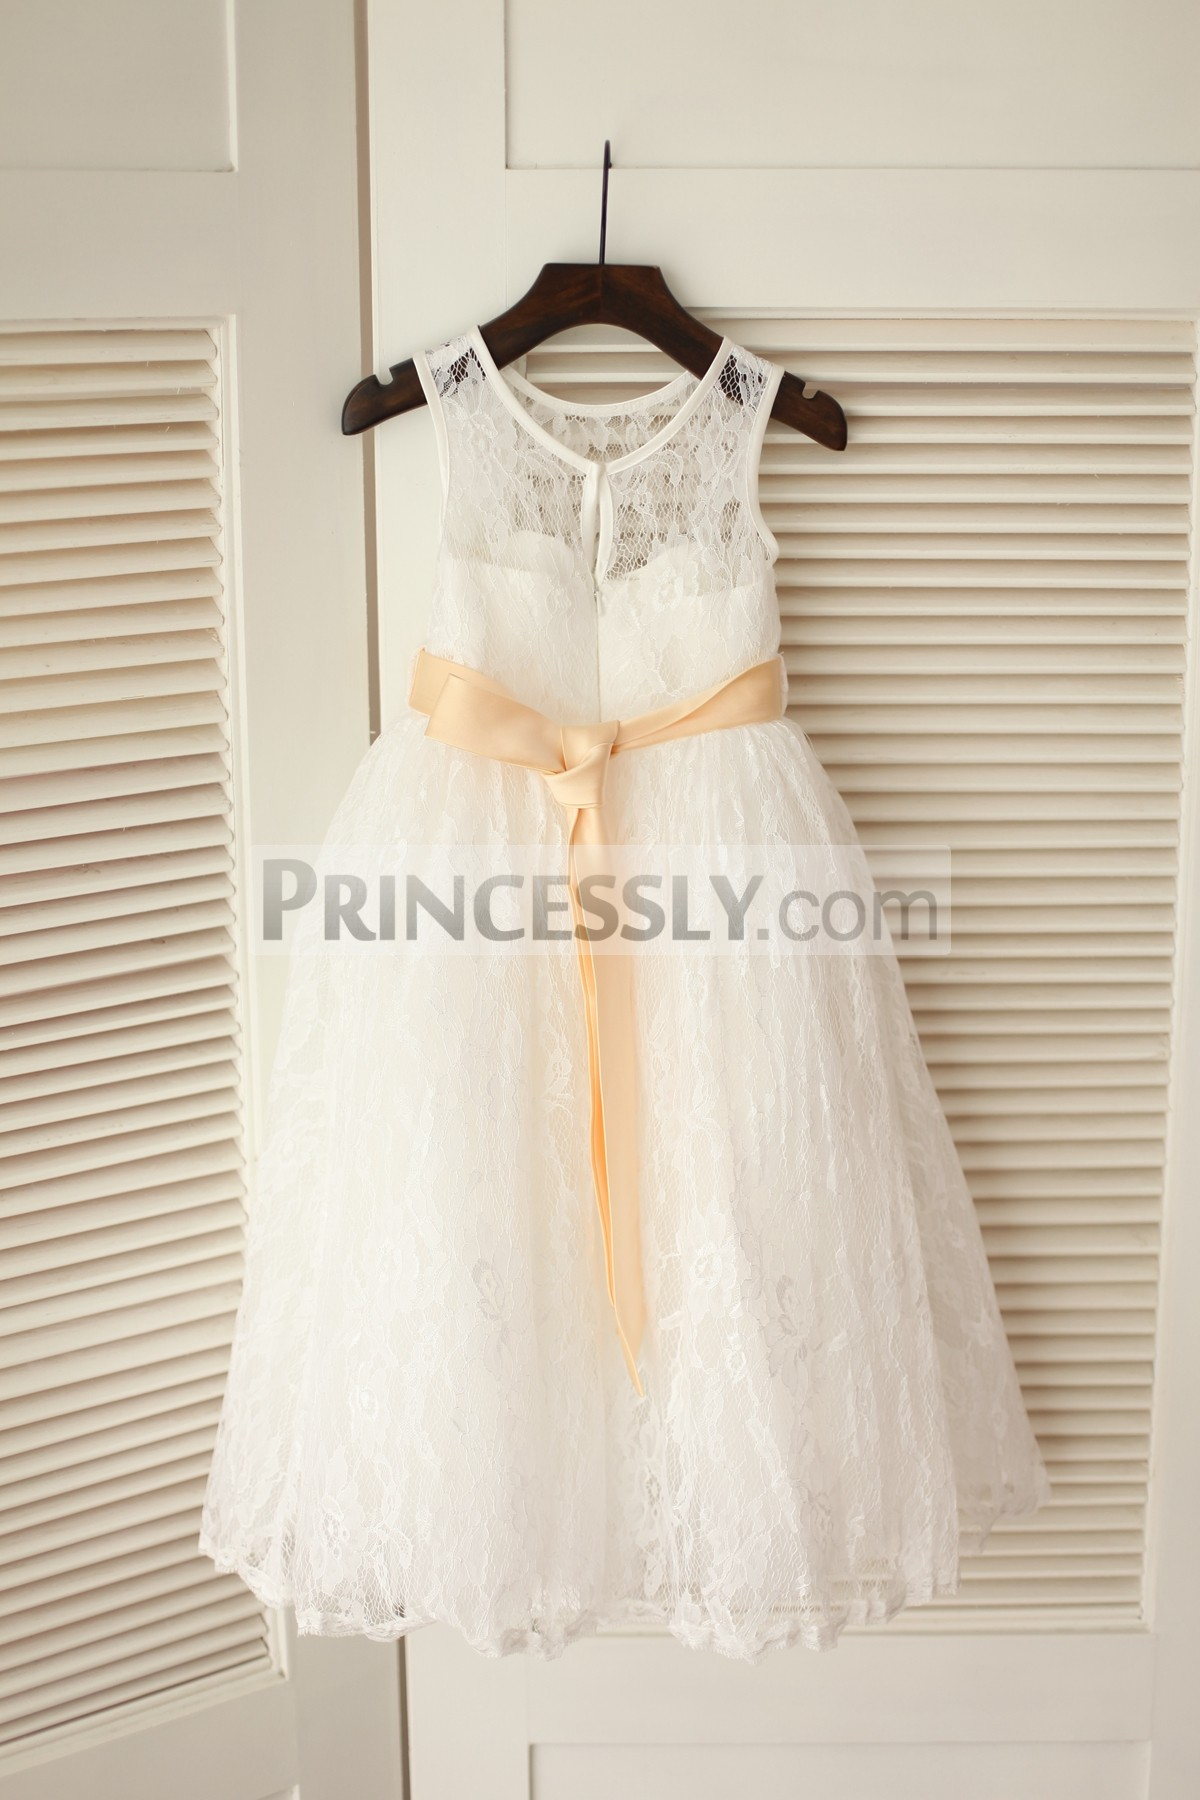 Ivory lace long wedding baby girl dress with sash